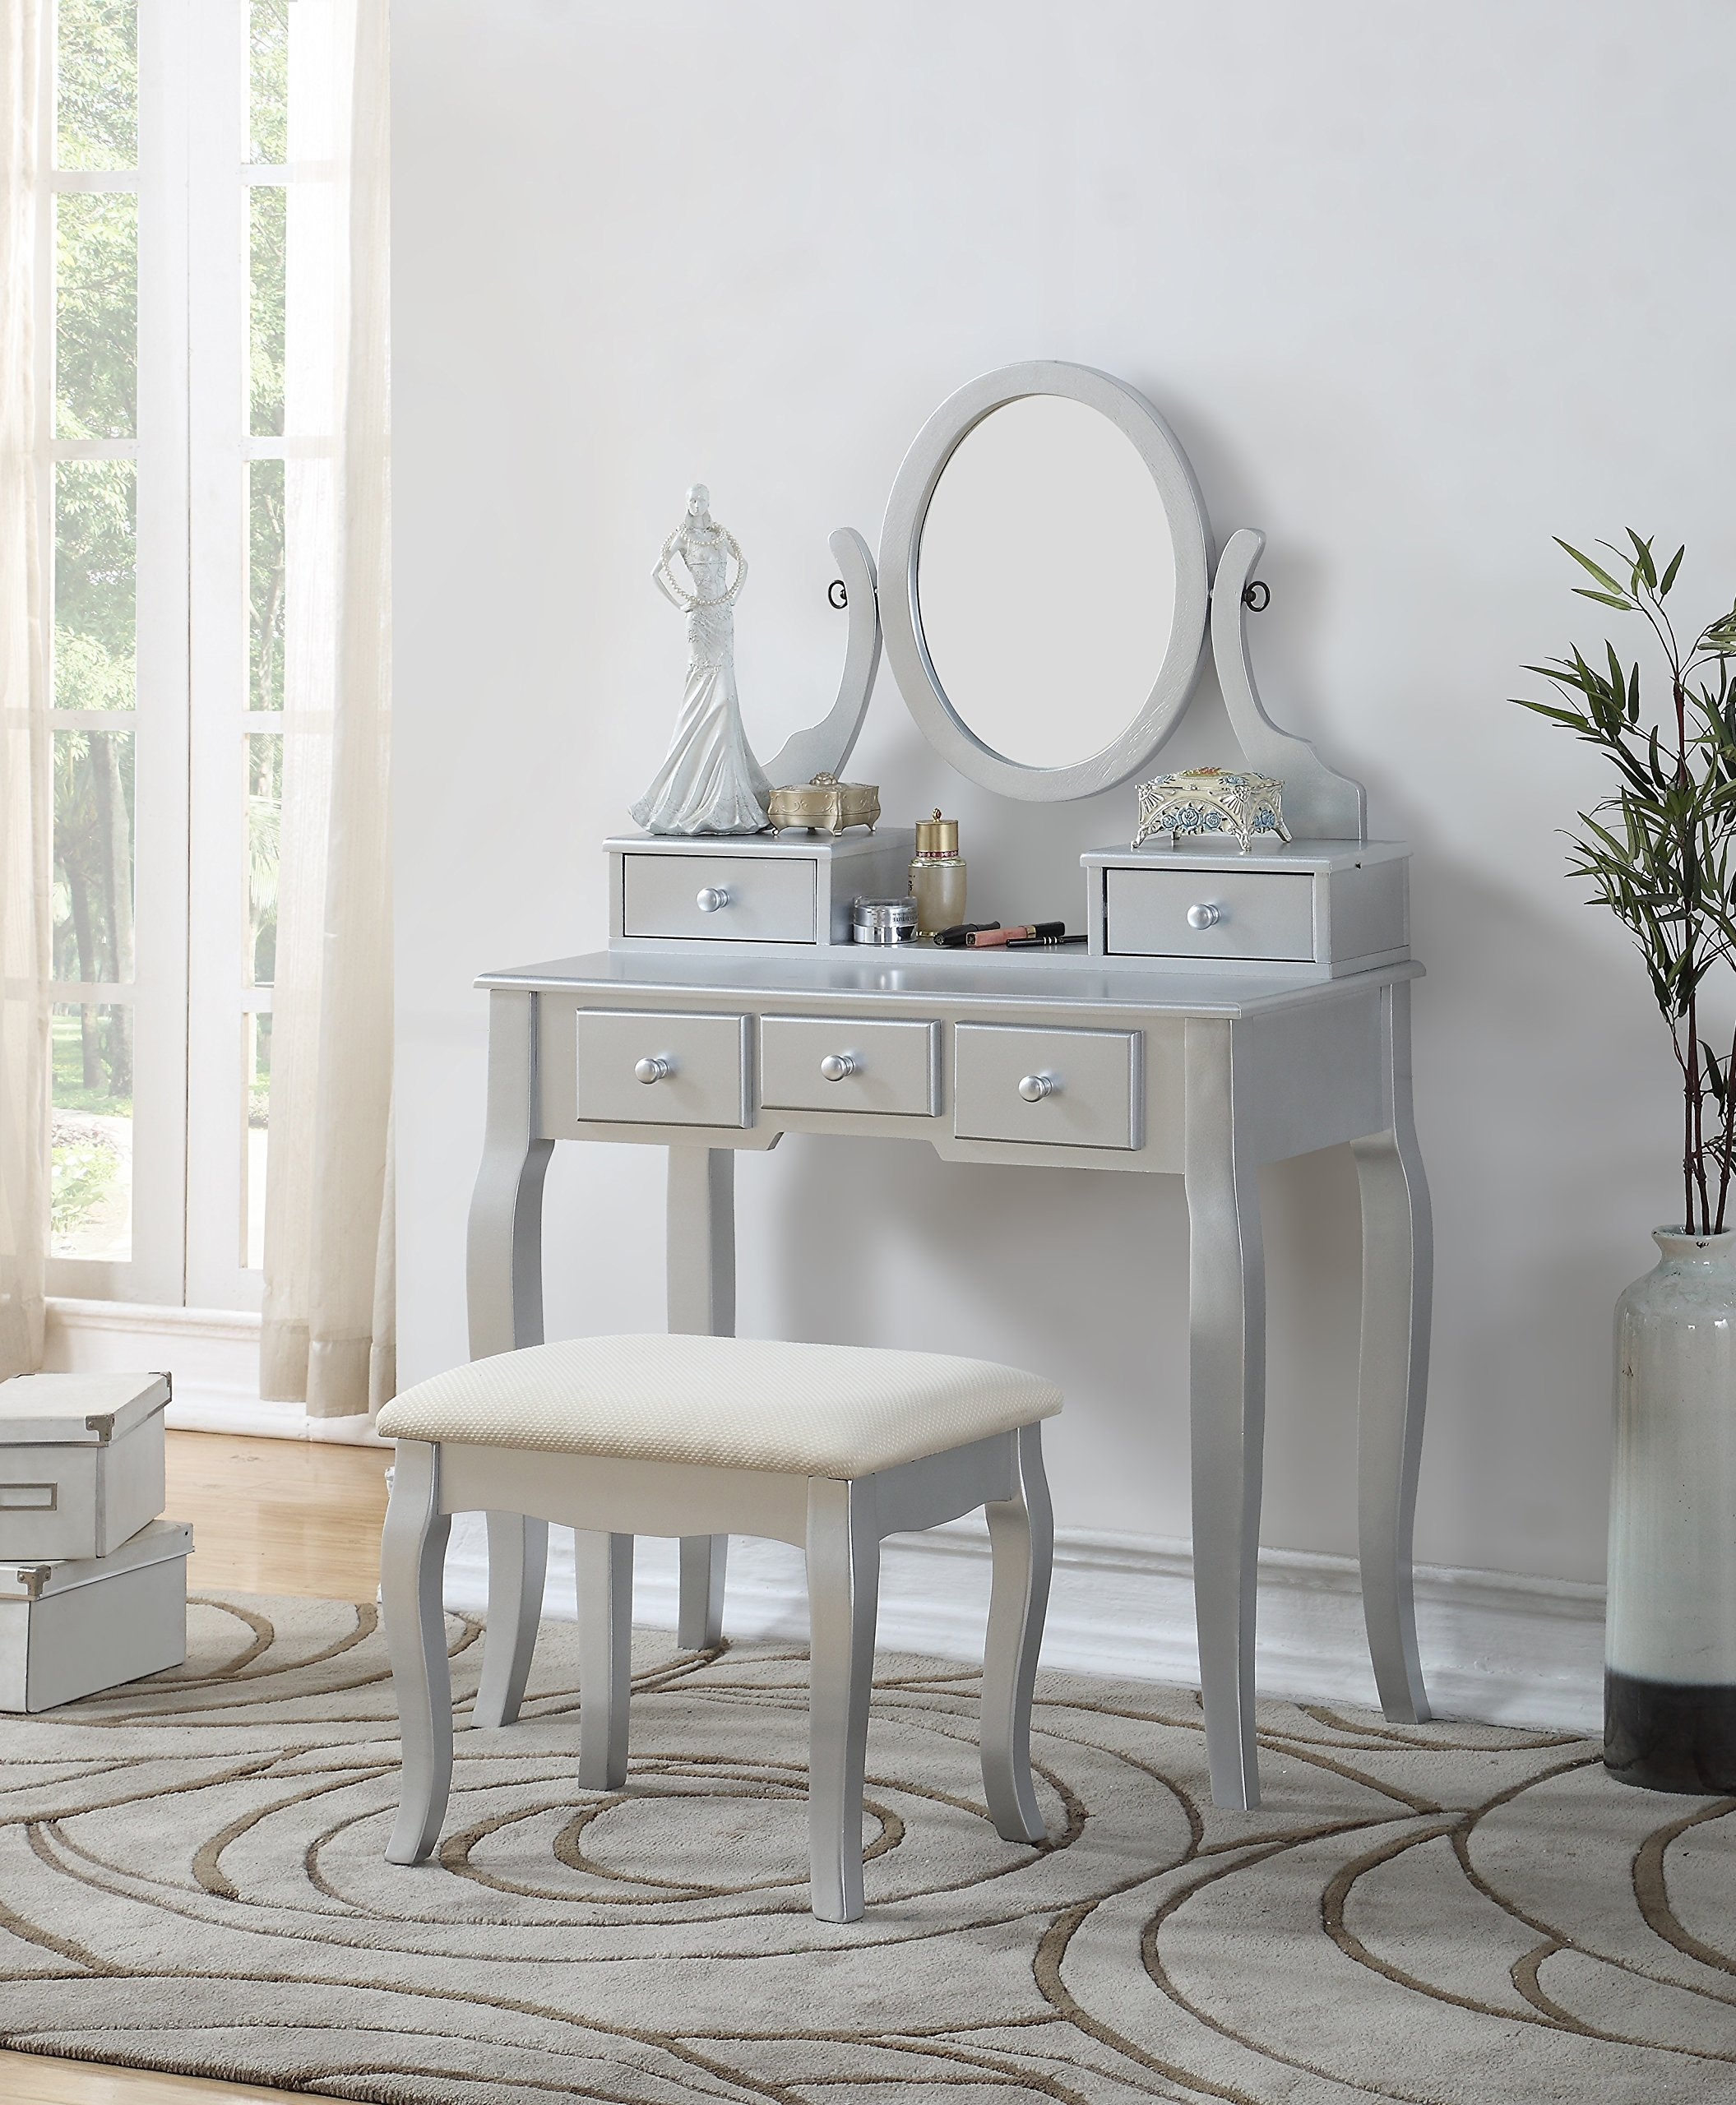 Attirant Silver Vanity Makeup Dressing Table Stool Set 5 Drawer Mirror Jewelry Wood  Desk